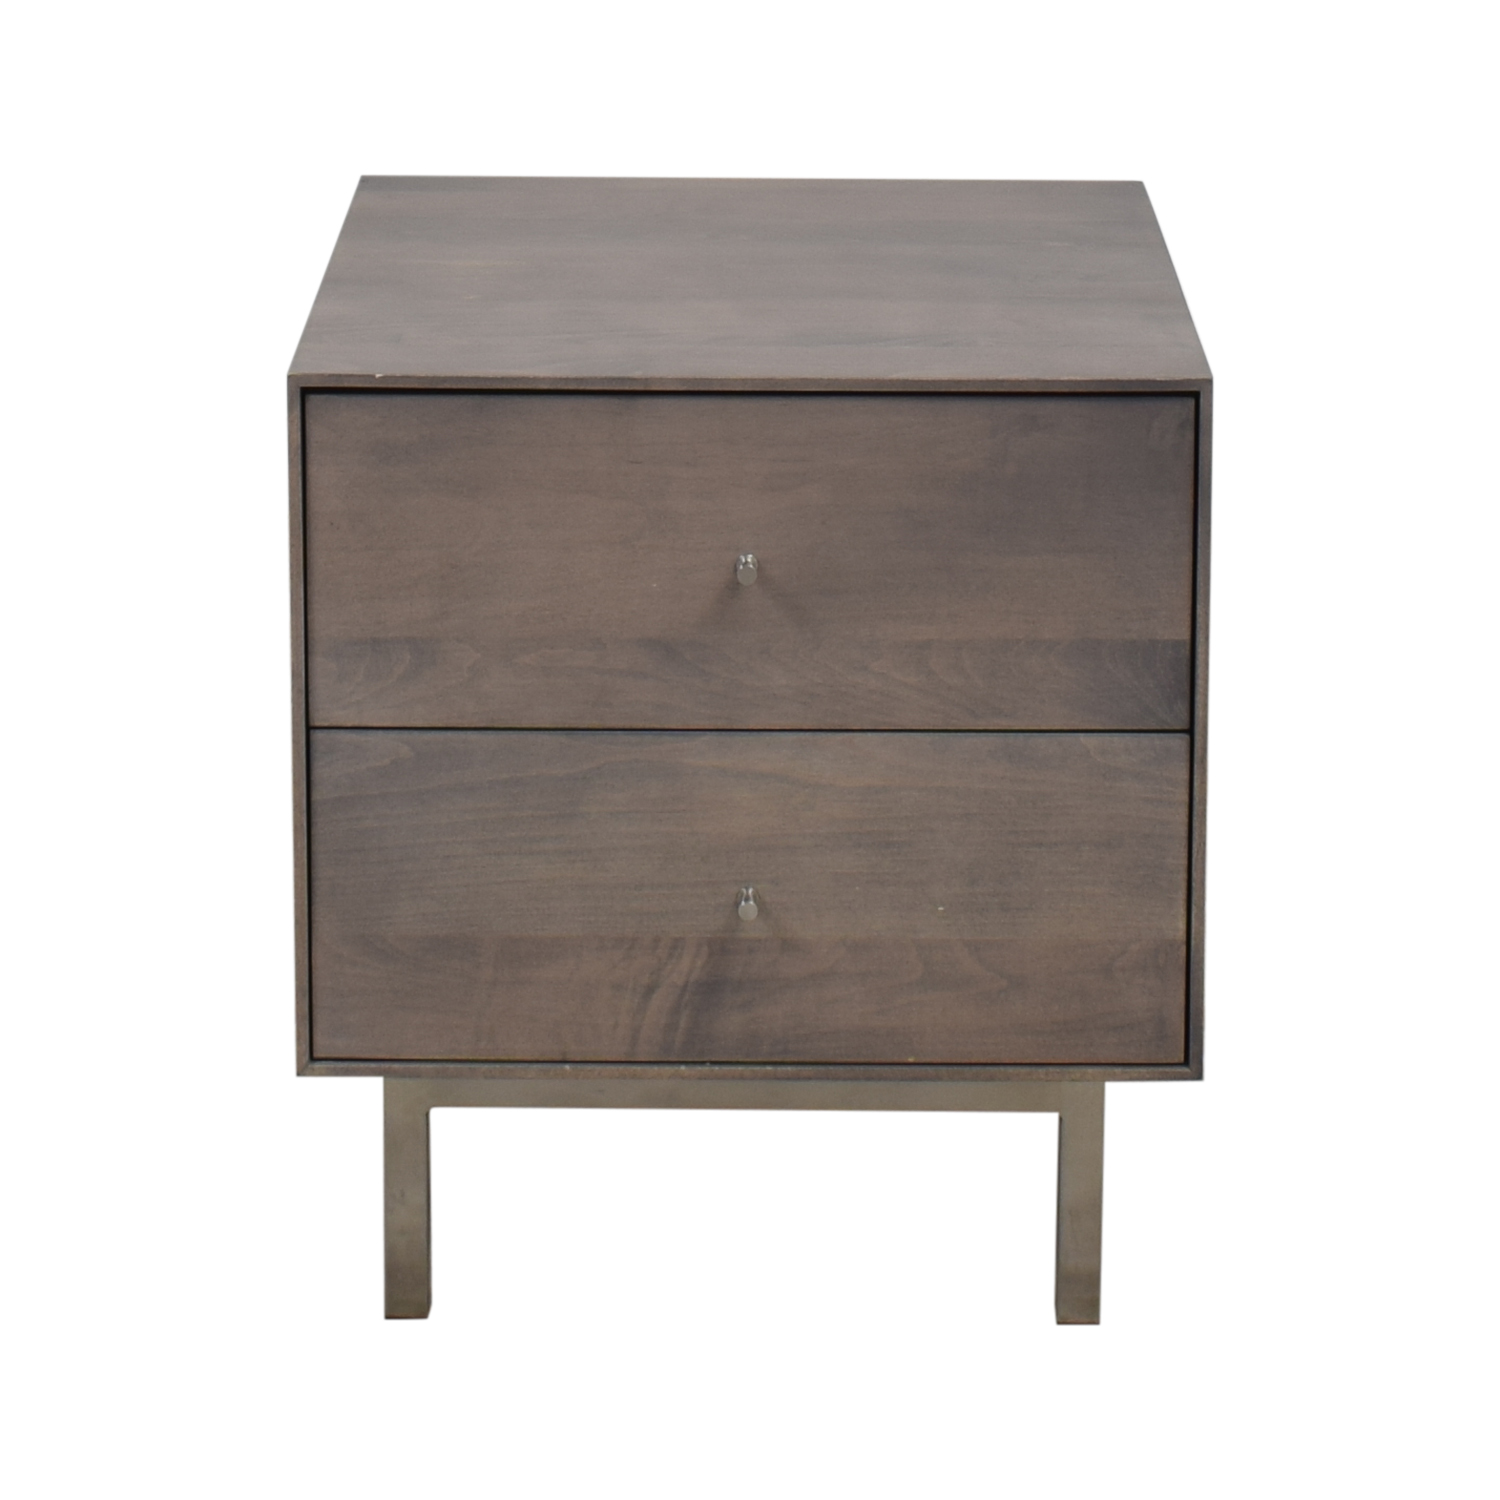 Room & Board Hudson Two Drawer Nightstand / Tables